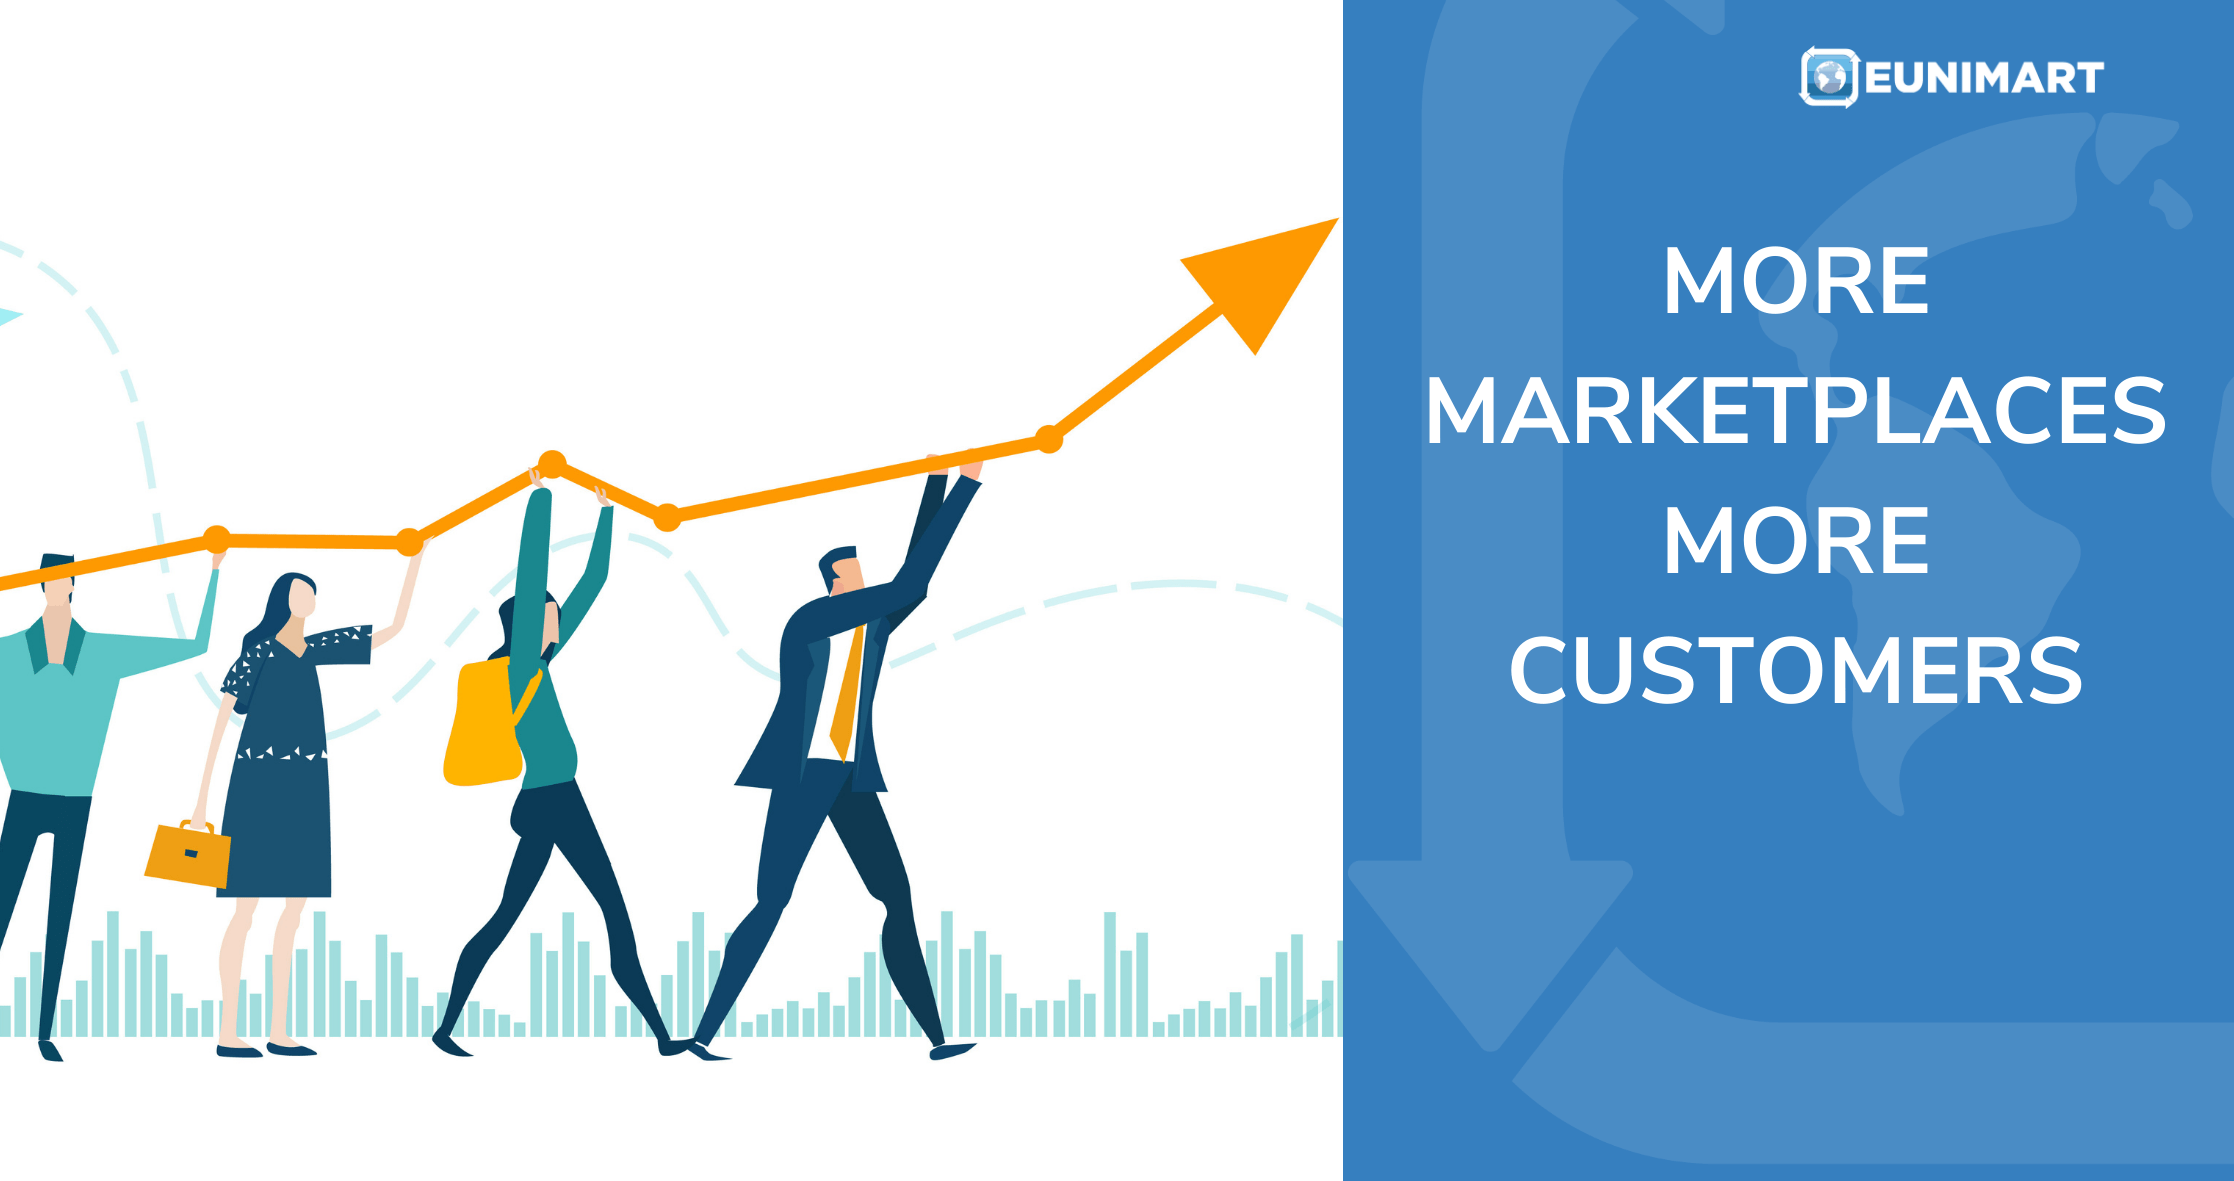 More Marketplaces, More Customers